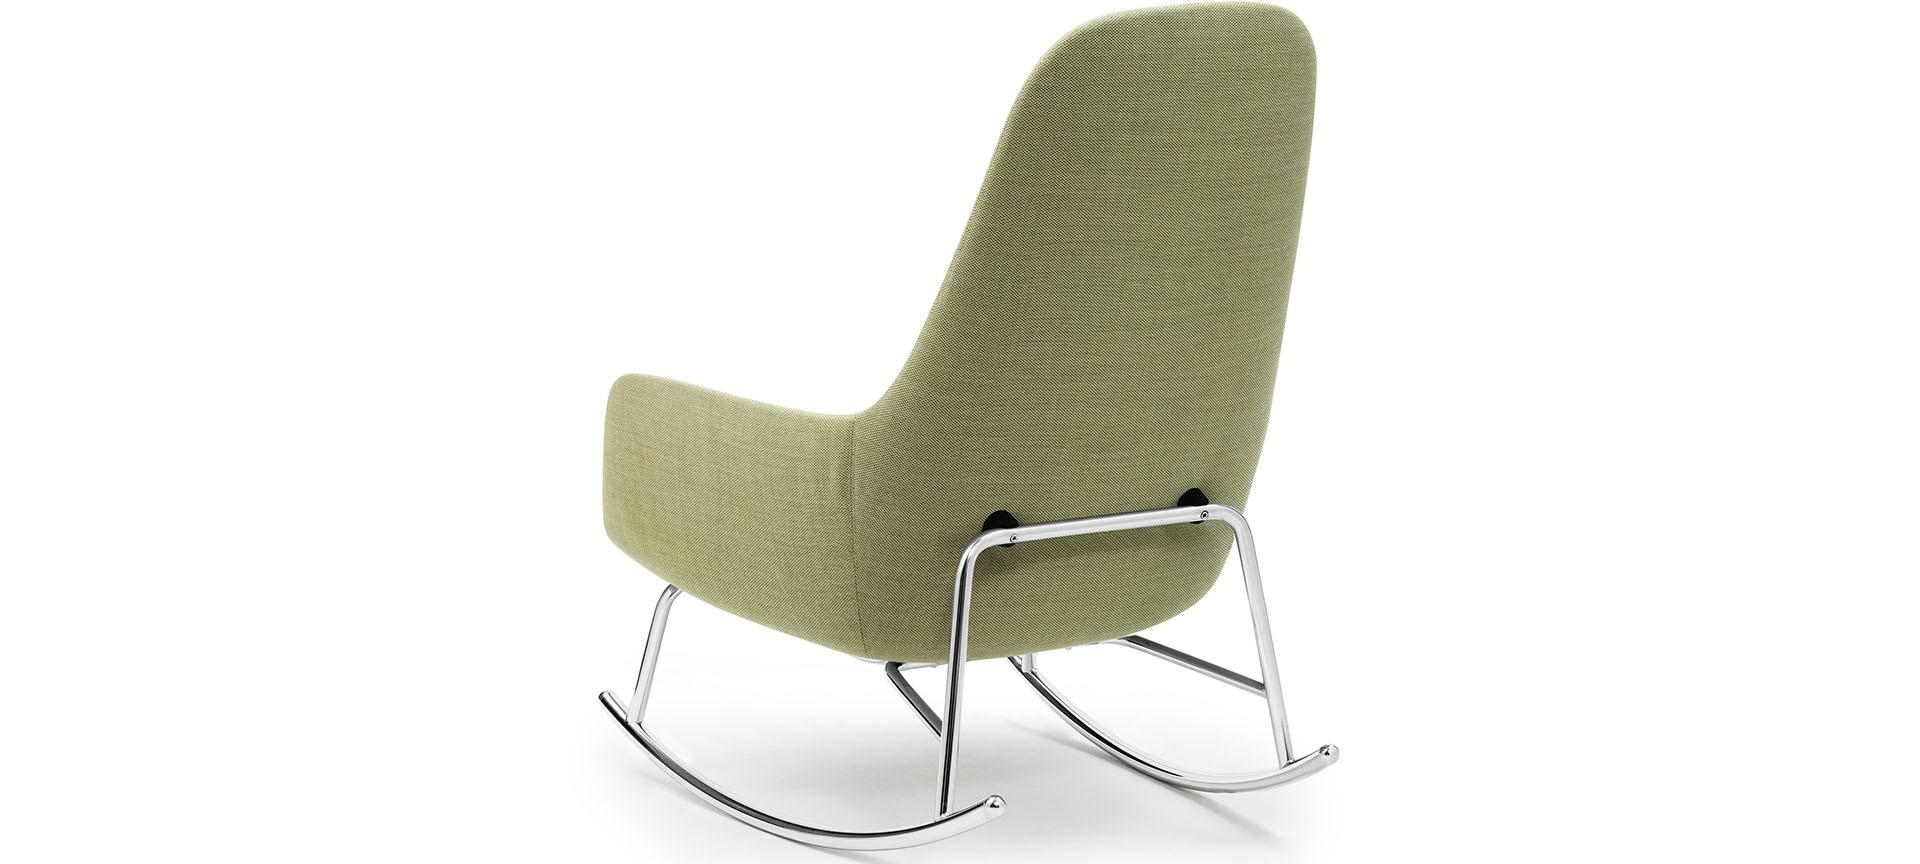 Rocking chair era haut normann copenhagen blou - Rocking chair confortable ...